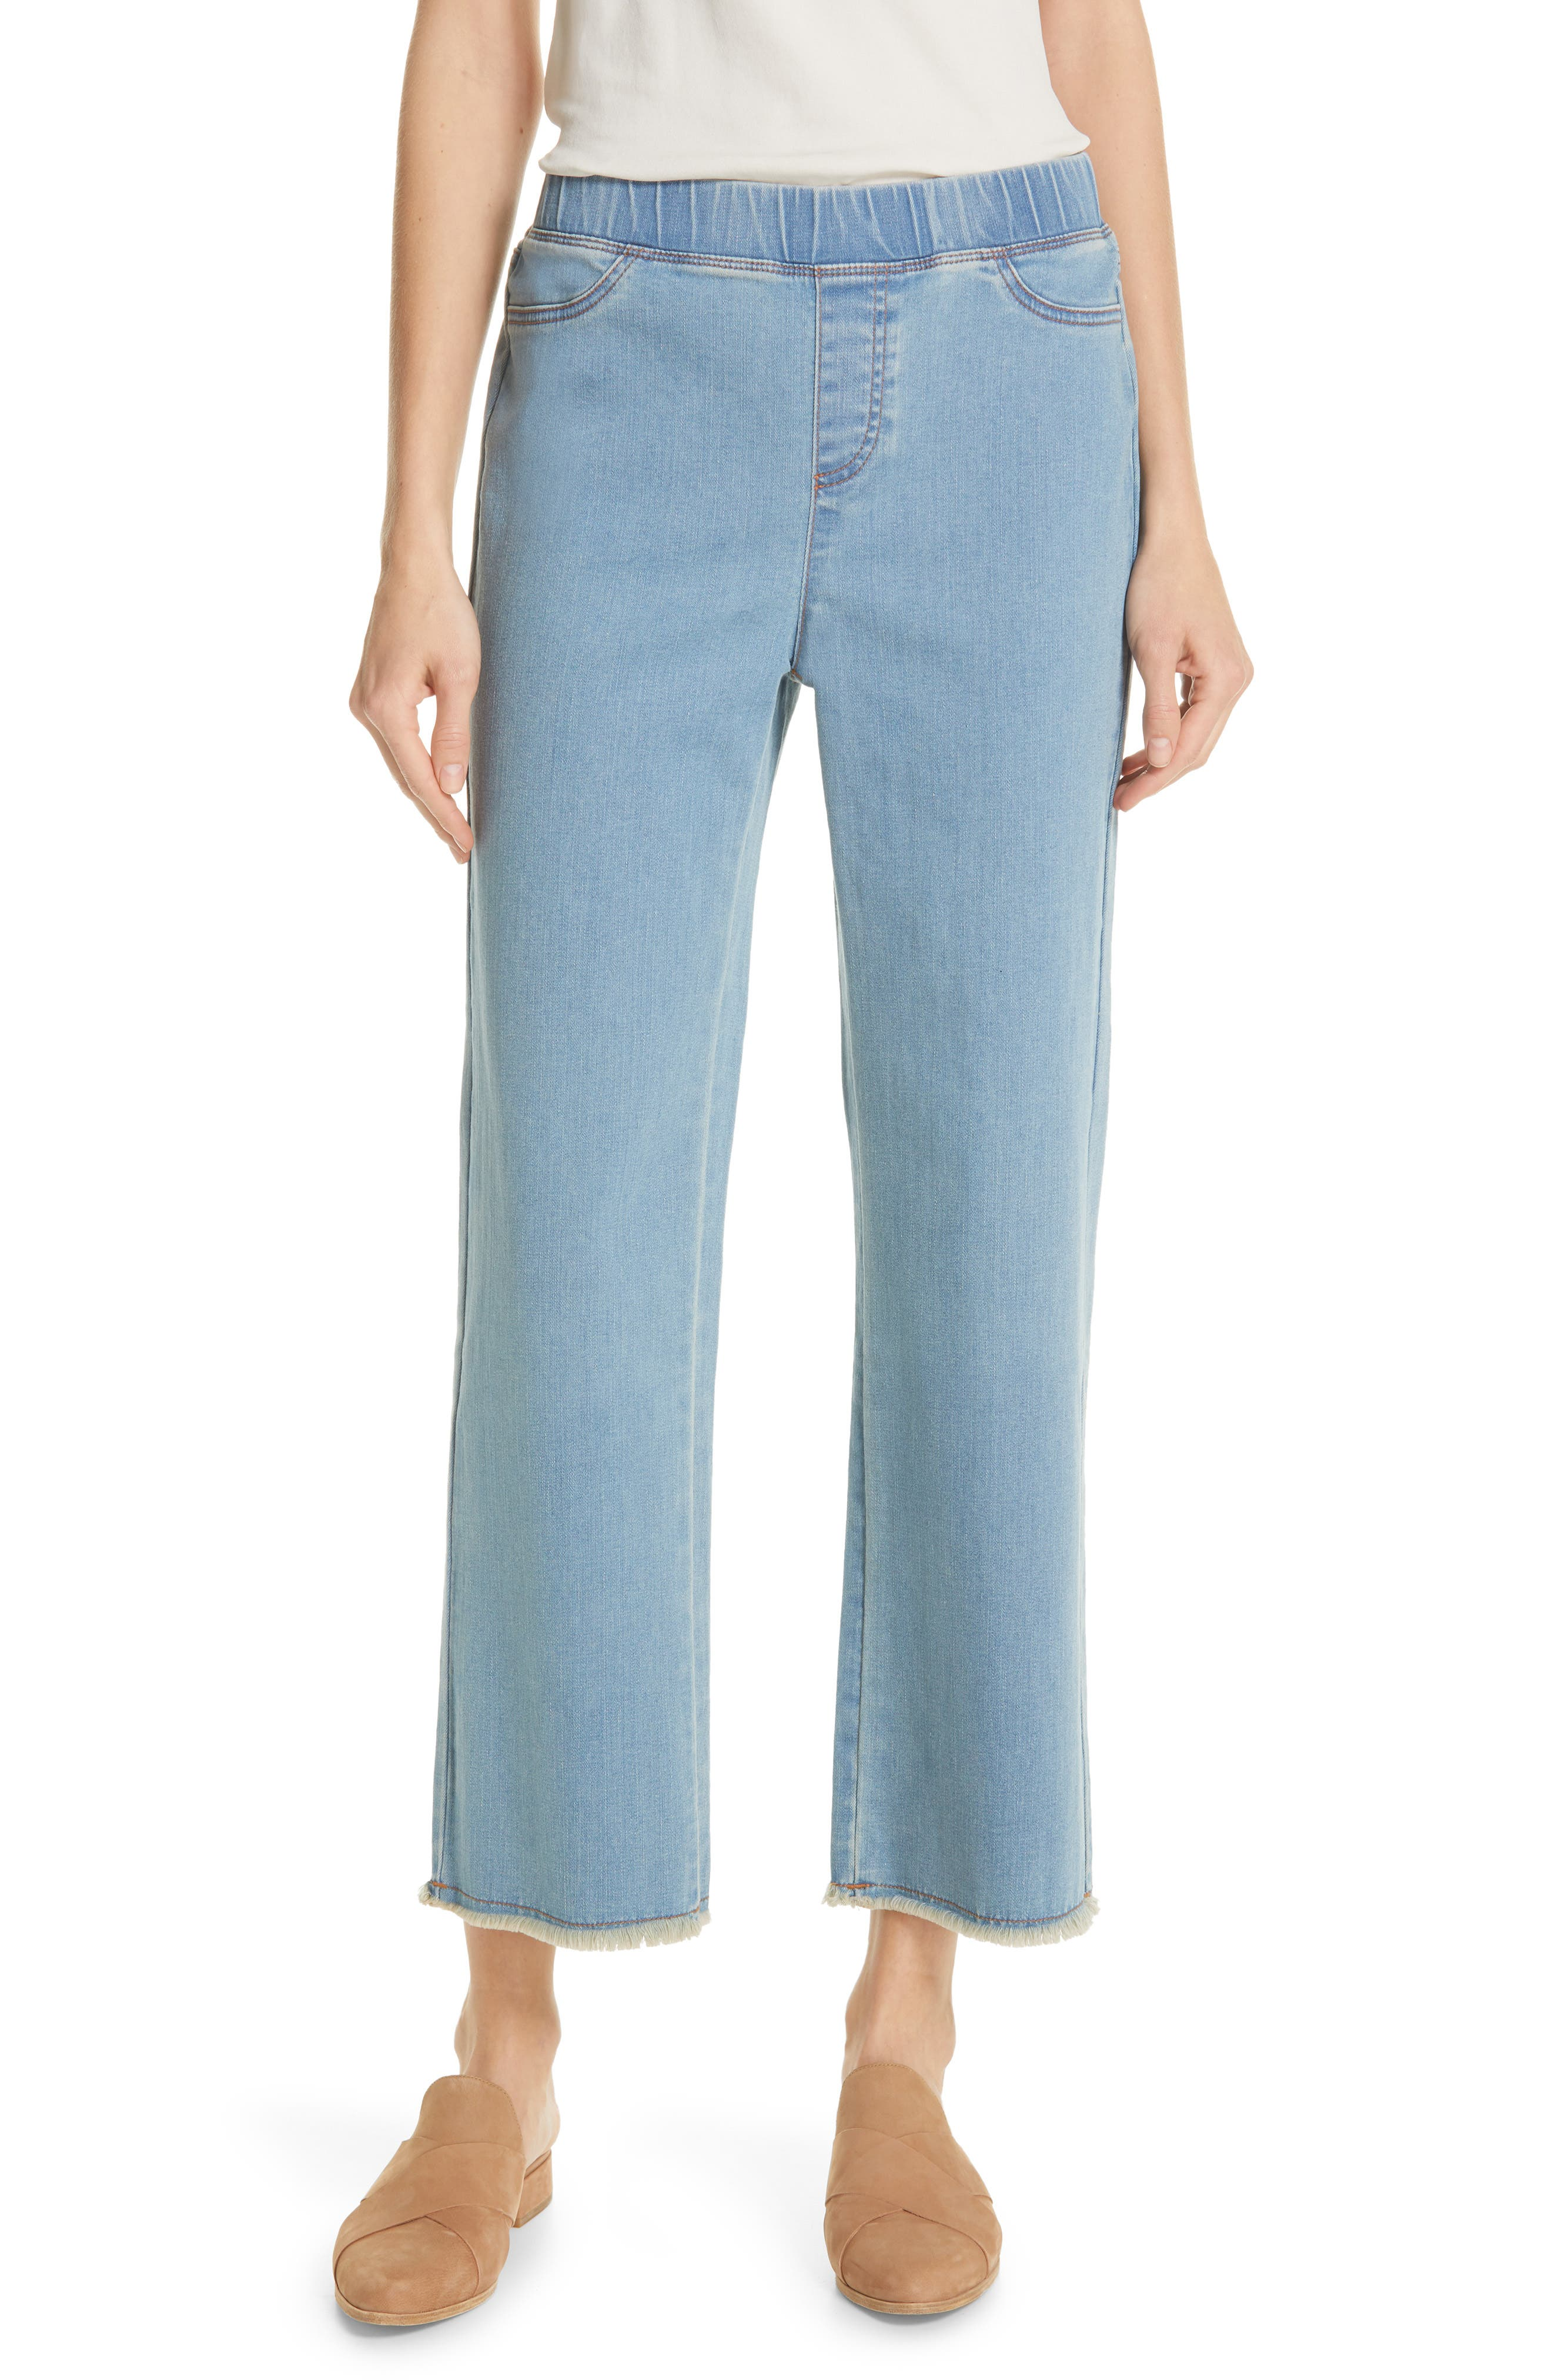 EILEEN FISHER Frayed Hem Pull-On Ankle Jeans, Main, color, FROST